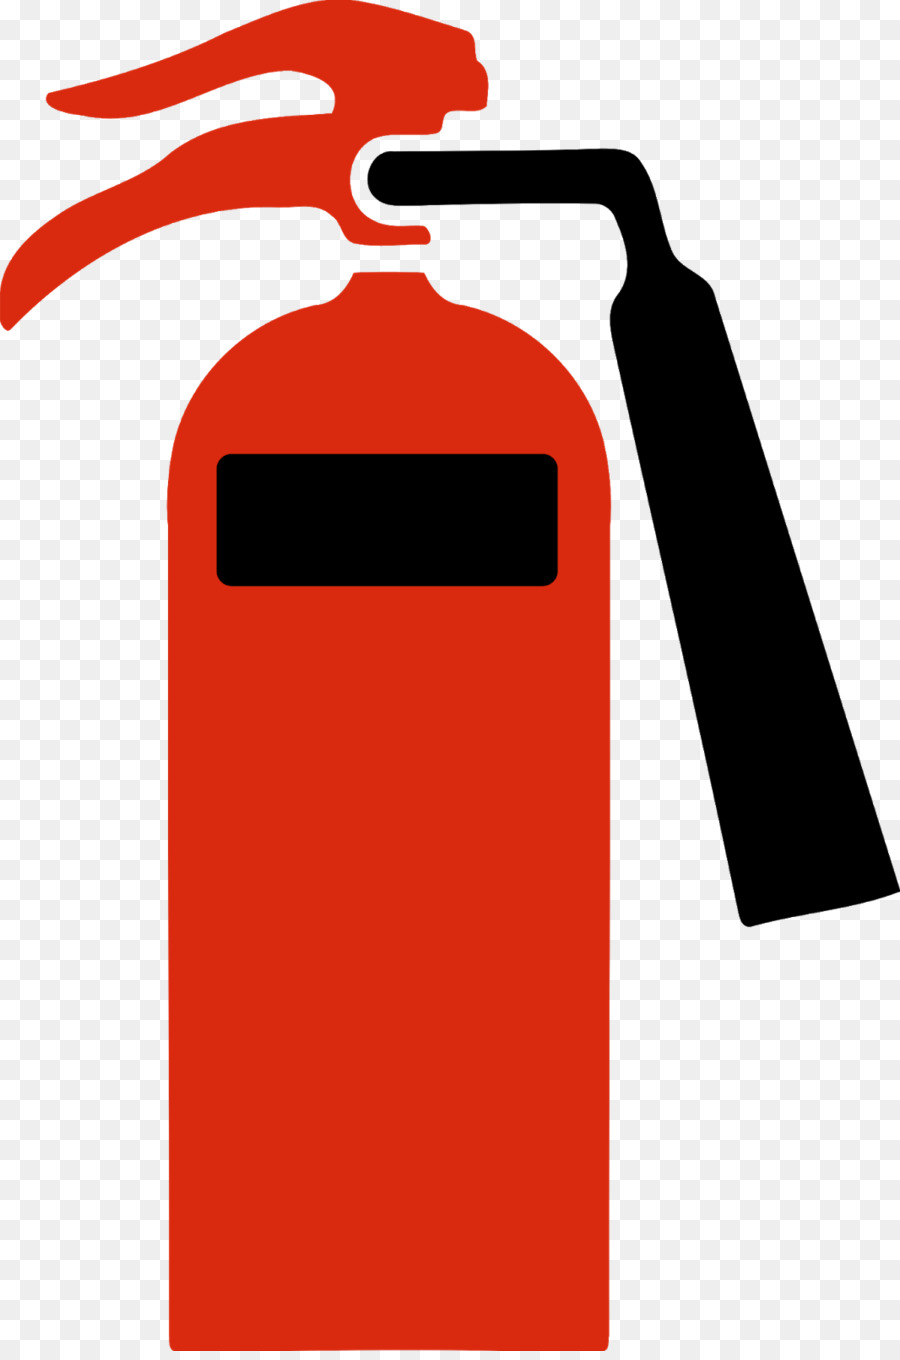 medium resolution of fire extinguishers fire active fire protection rectangle red png